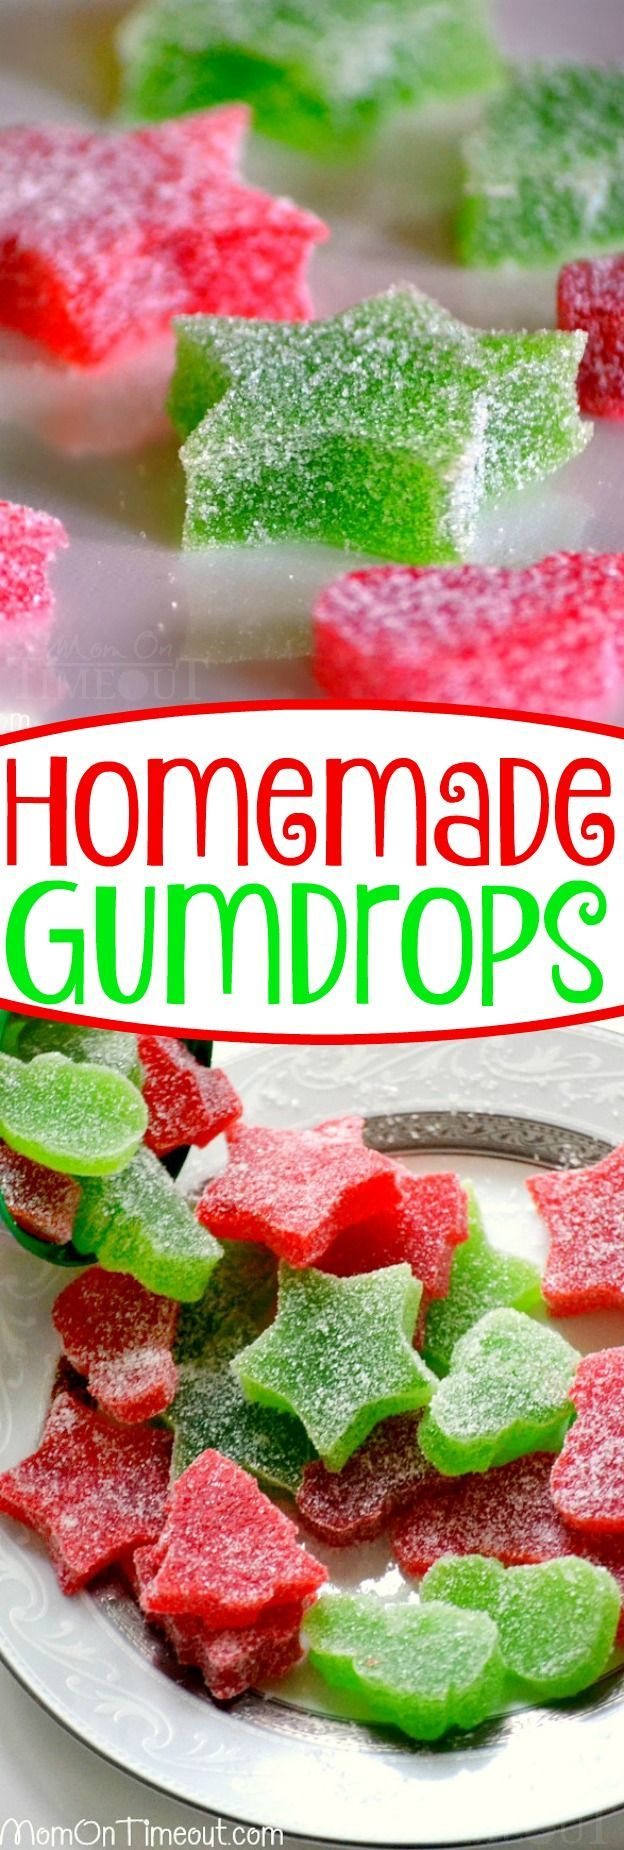 These Homemade Gumdrops are the perfect treat to make for friends and family during the holidays! Just a handful of ingredients including applesauce, and you're on your way to a perfectly sweet treat!